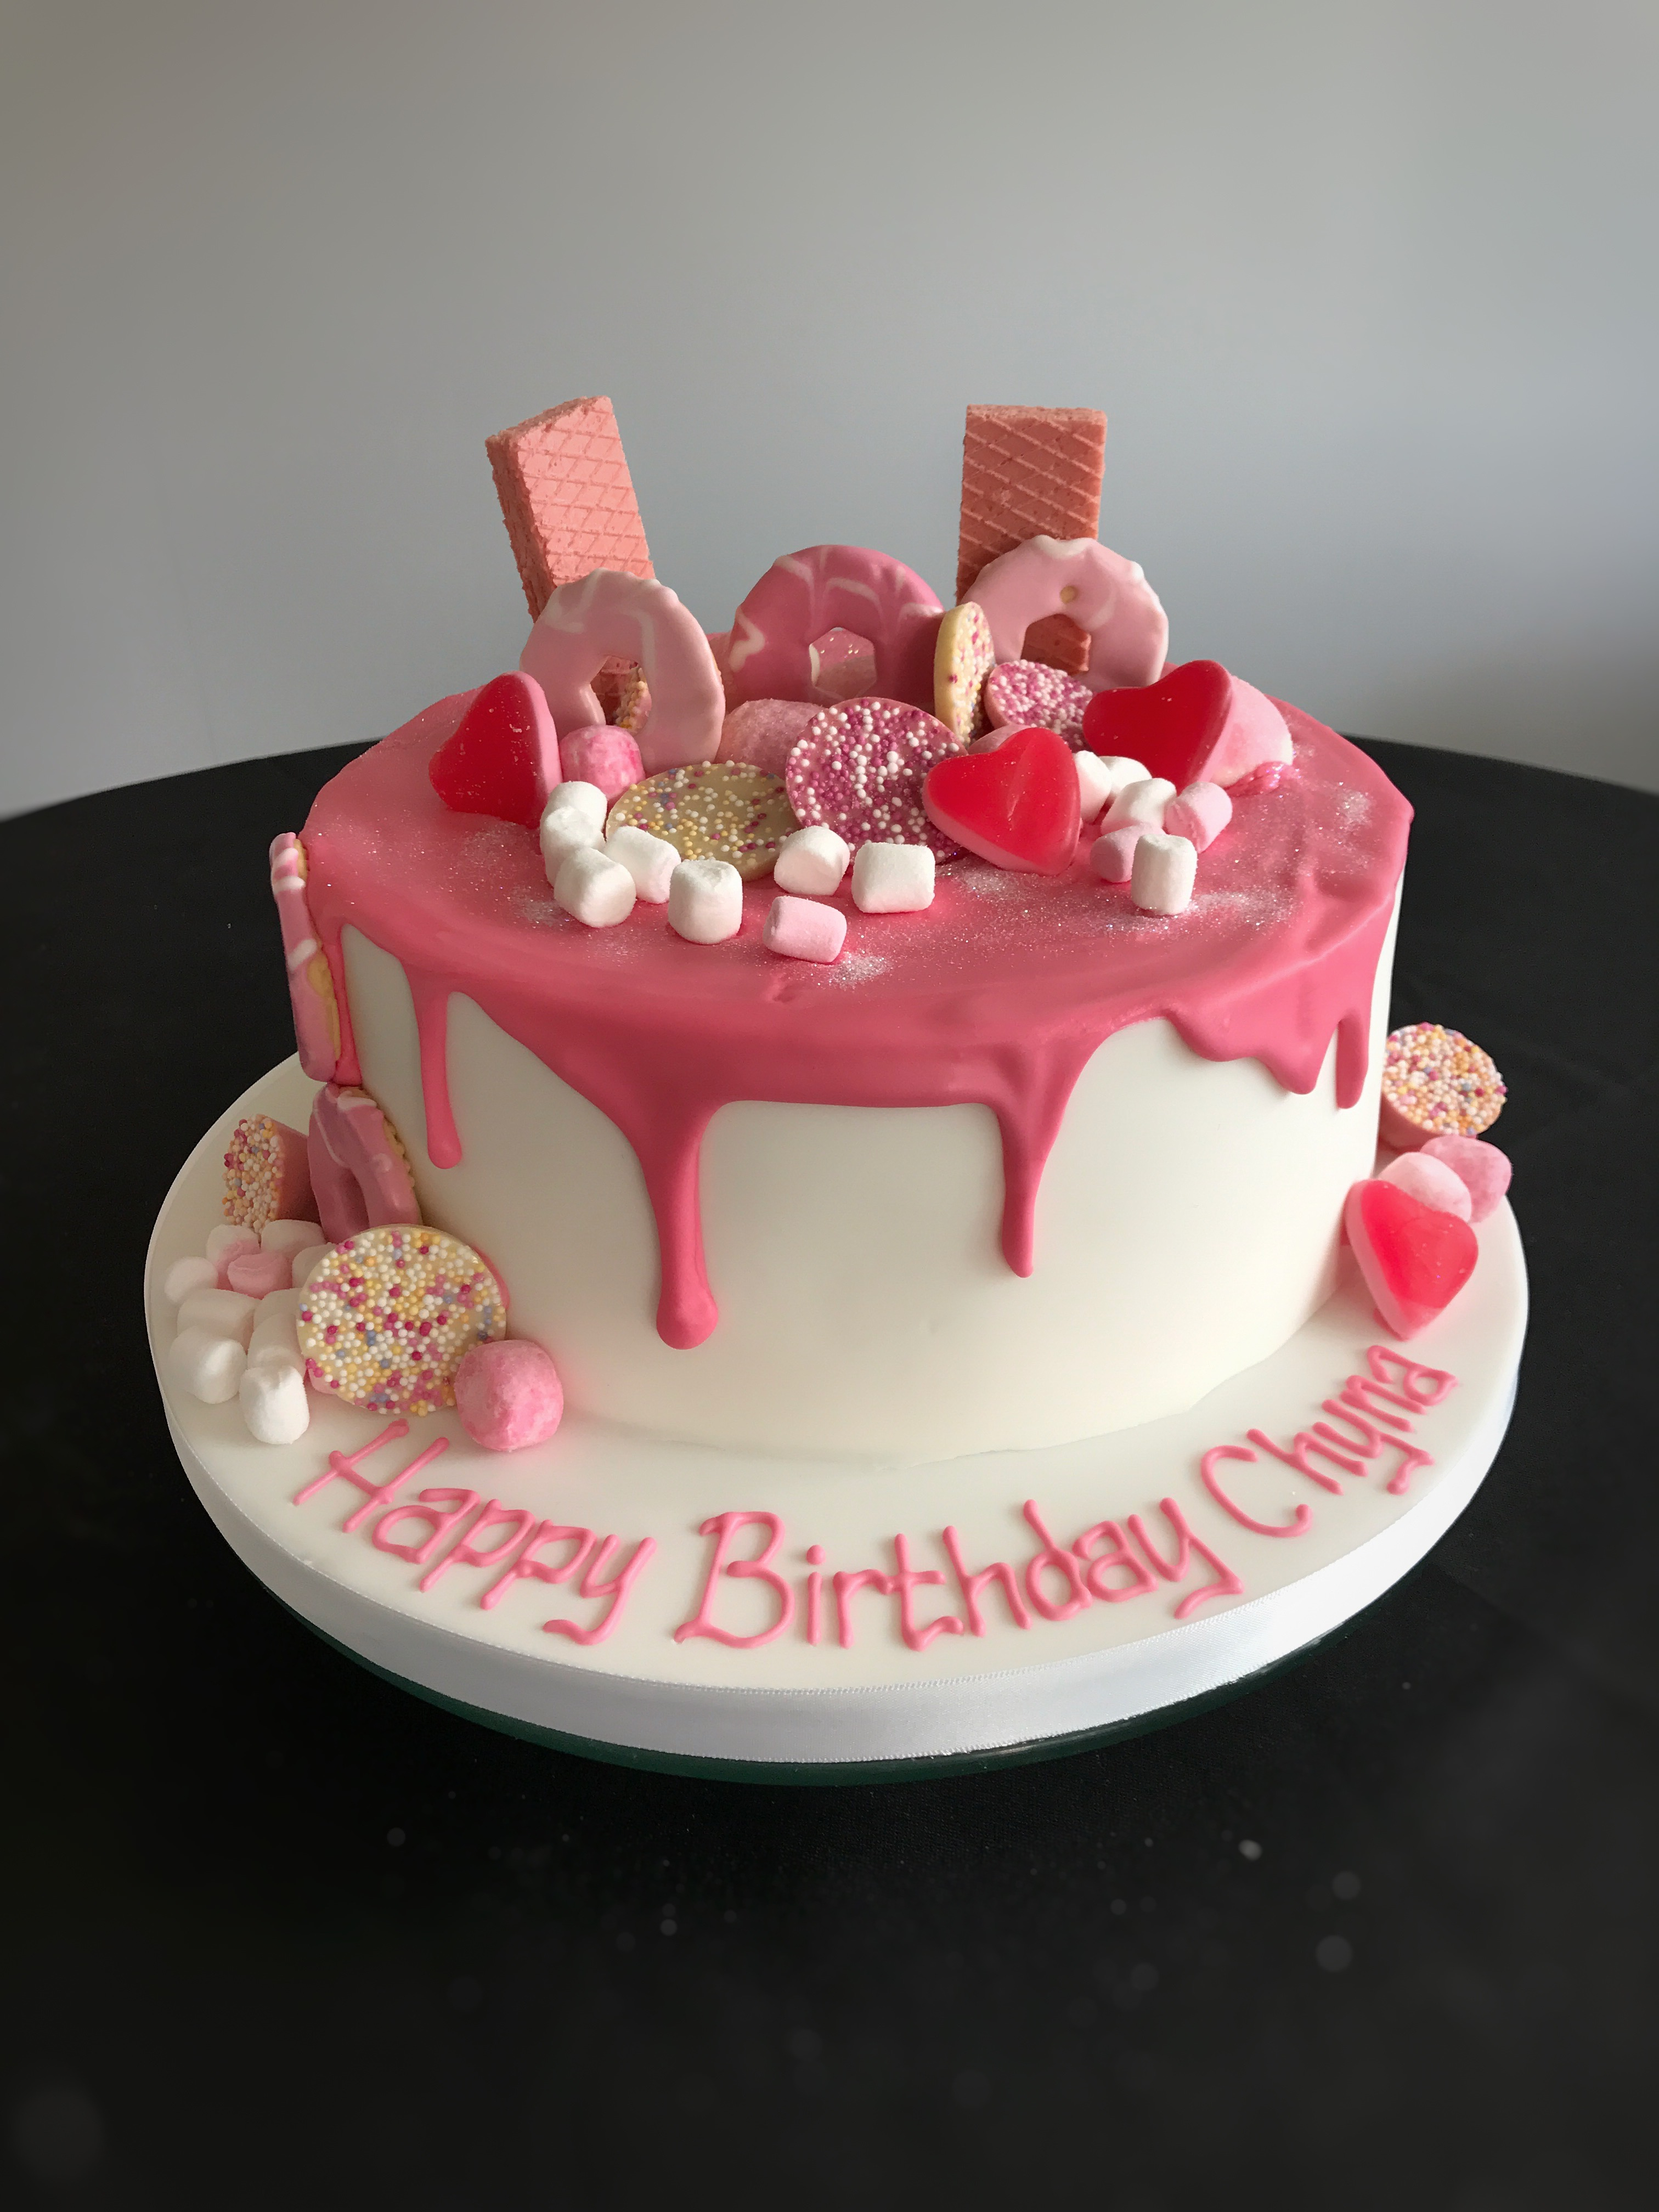 Biscuits And Treats Female Birthday Drip Cakes Bedfordshire Hertfordshire London Buckinghamshire